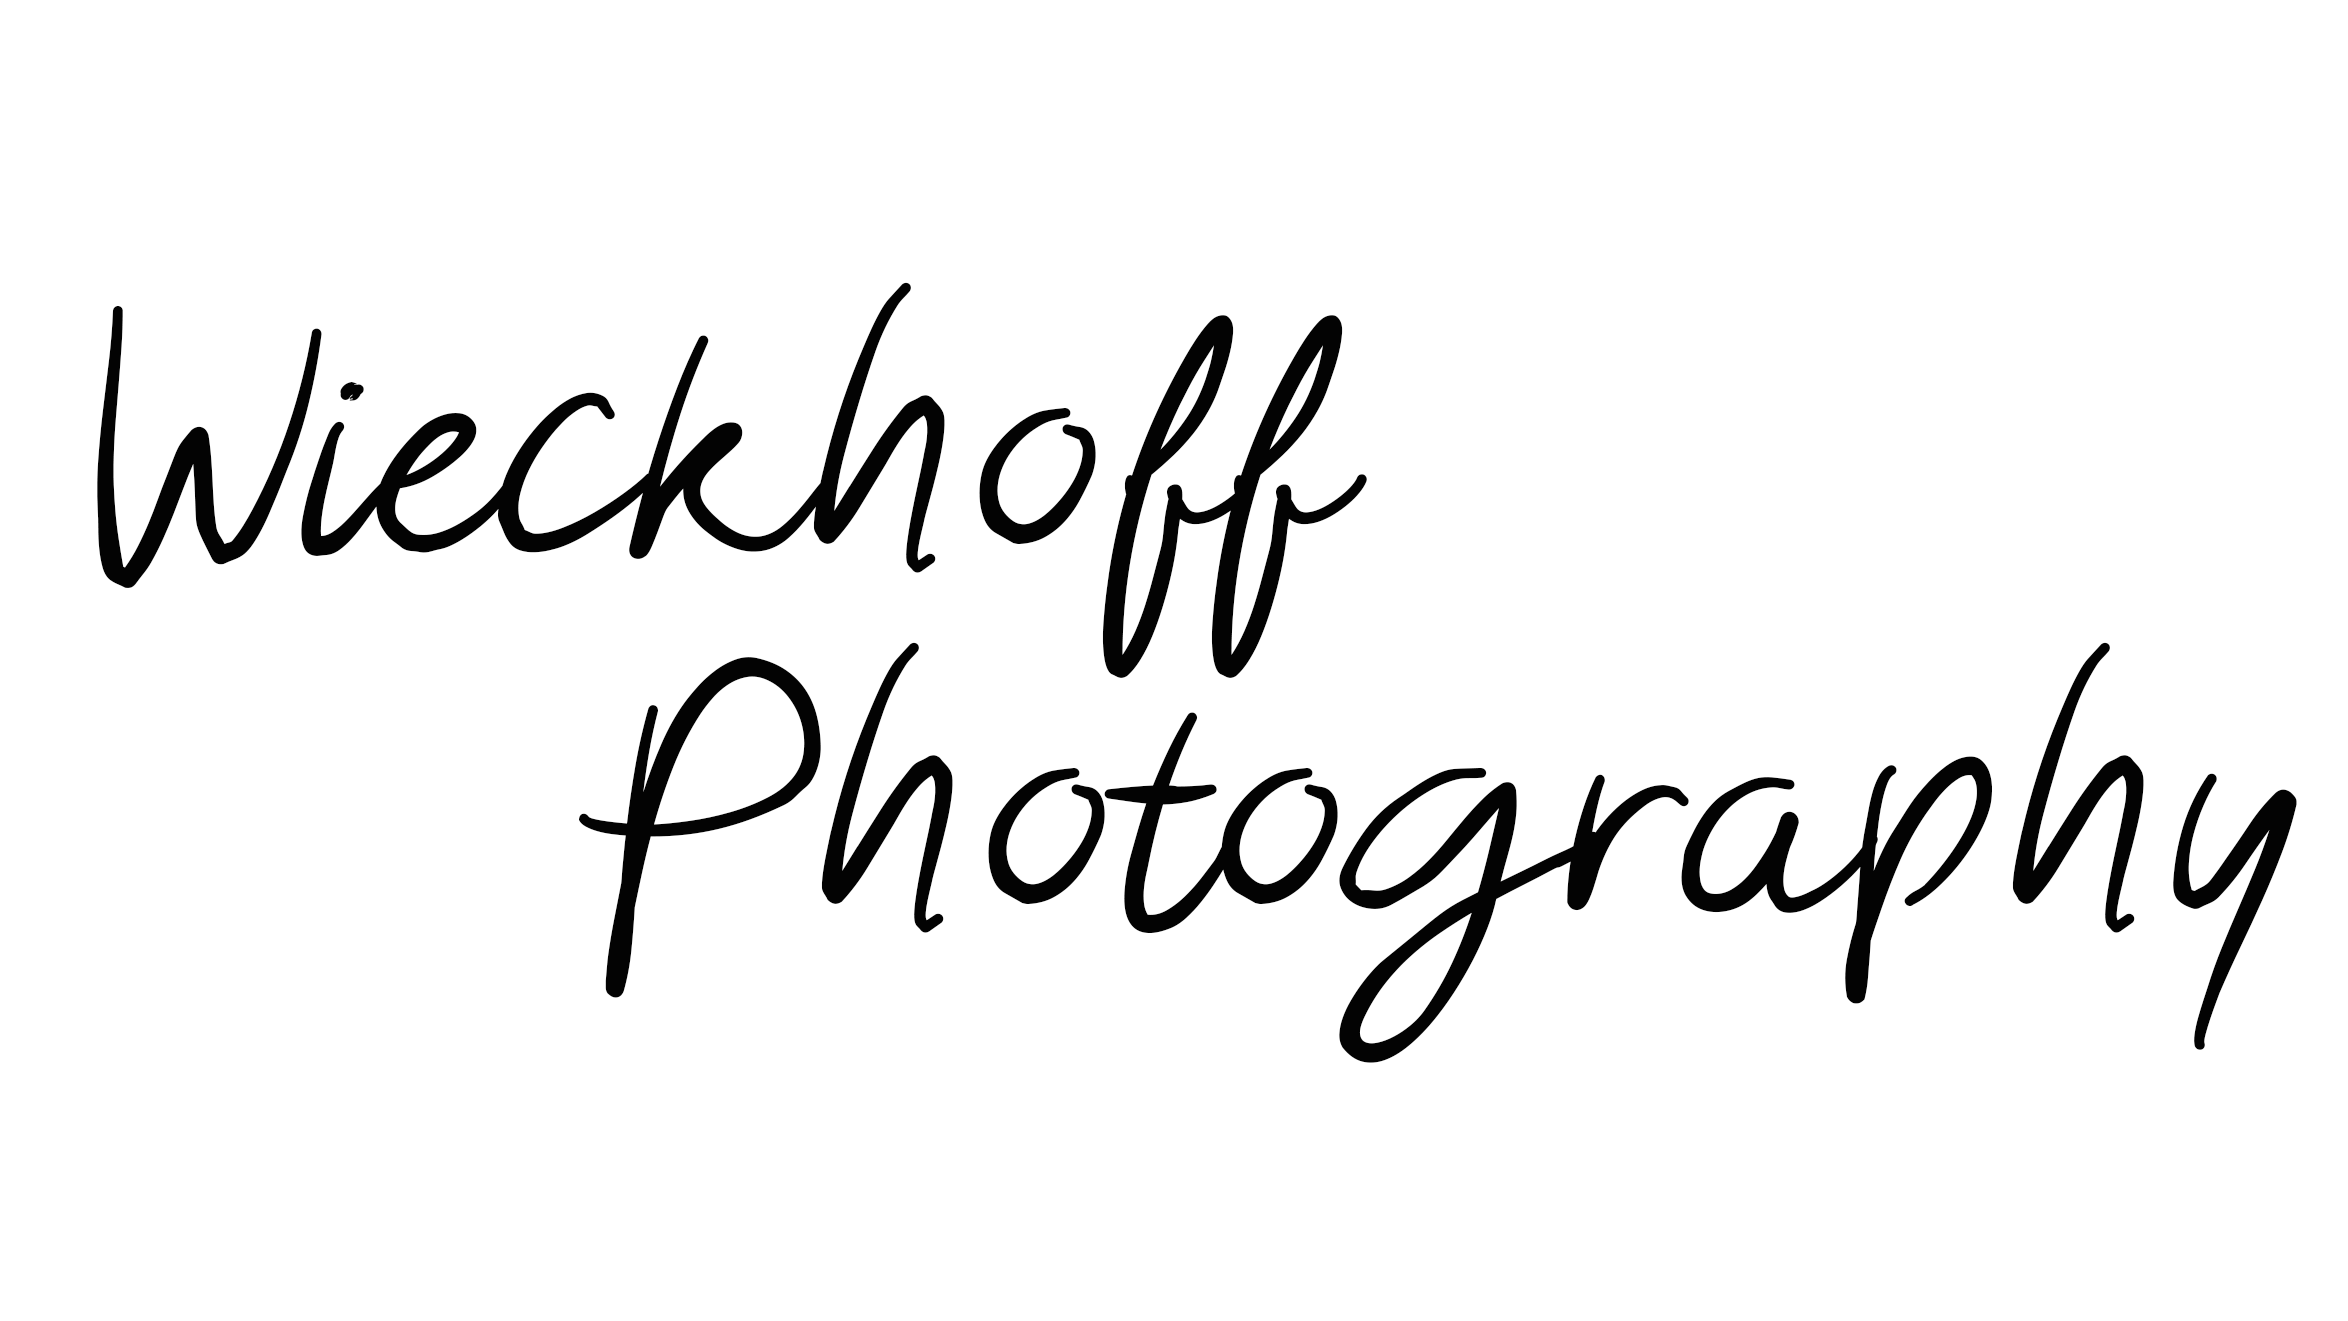 Wieckhoff Photography Shop